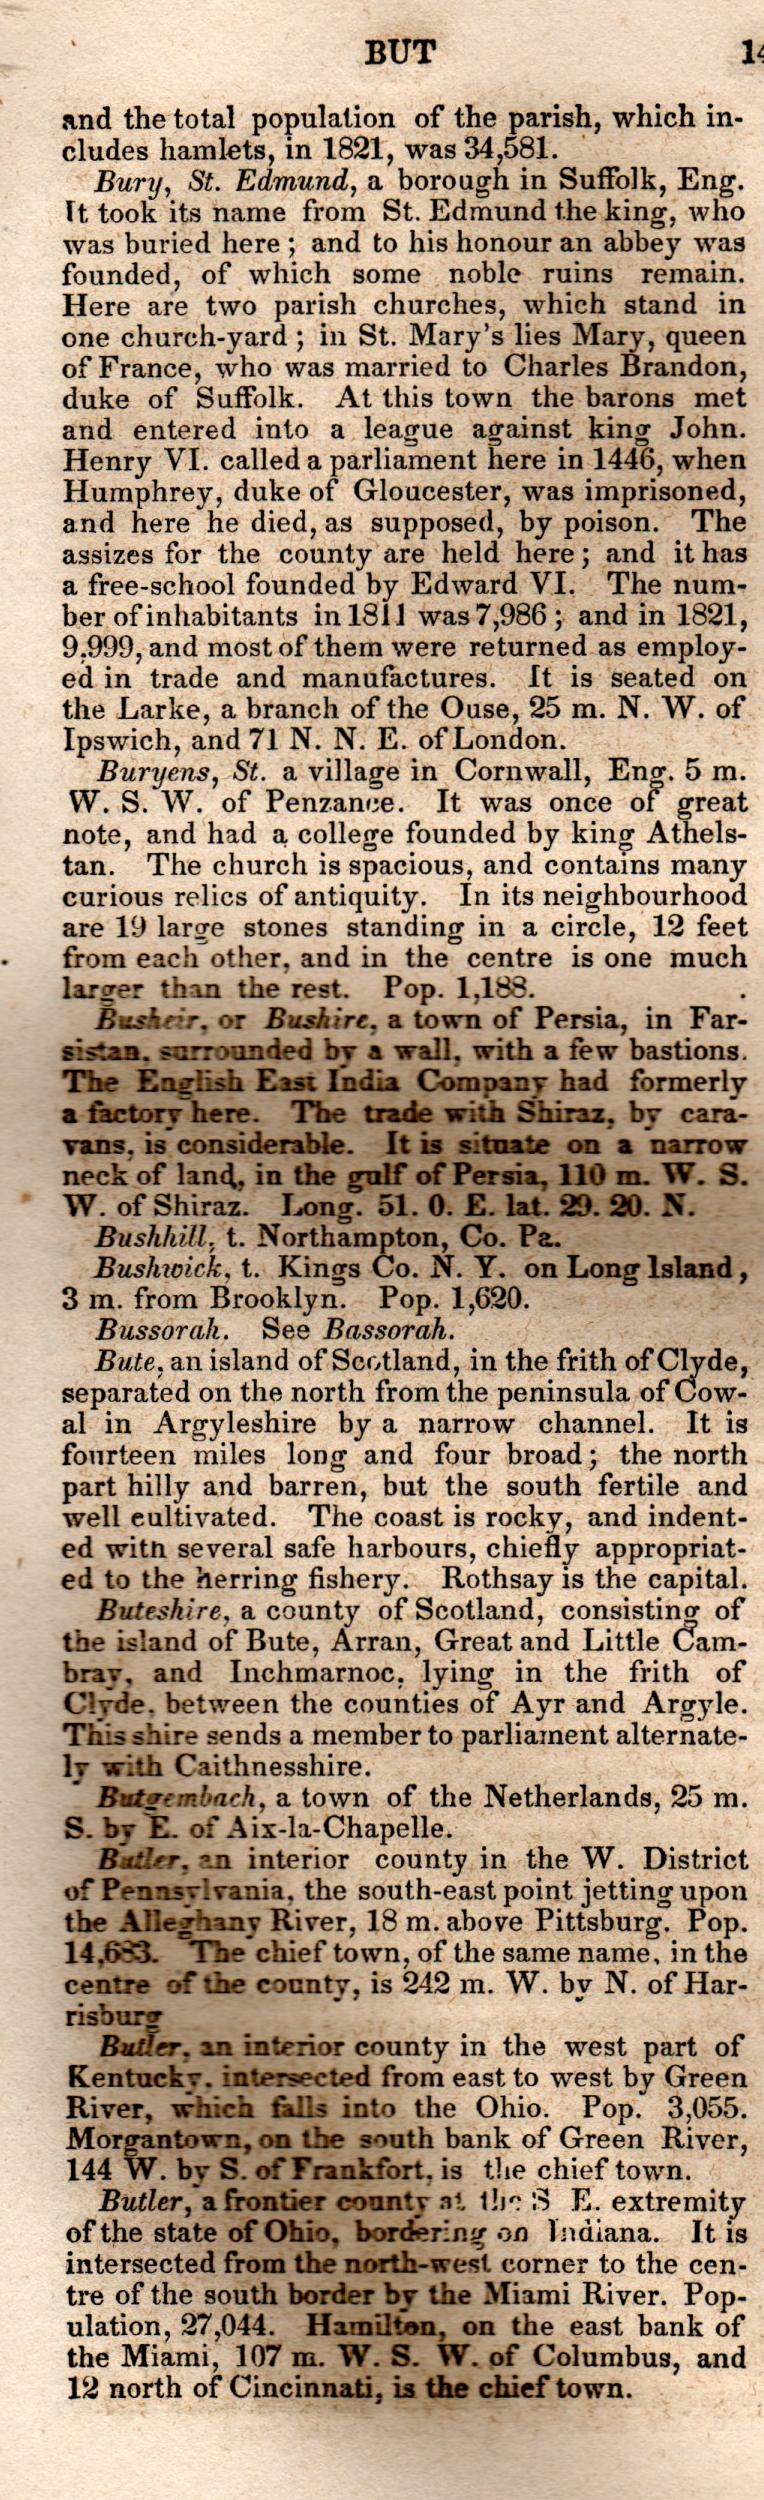 Brookes' Universal Gazetteer (1850), Page  141  Left Column